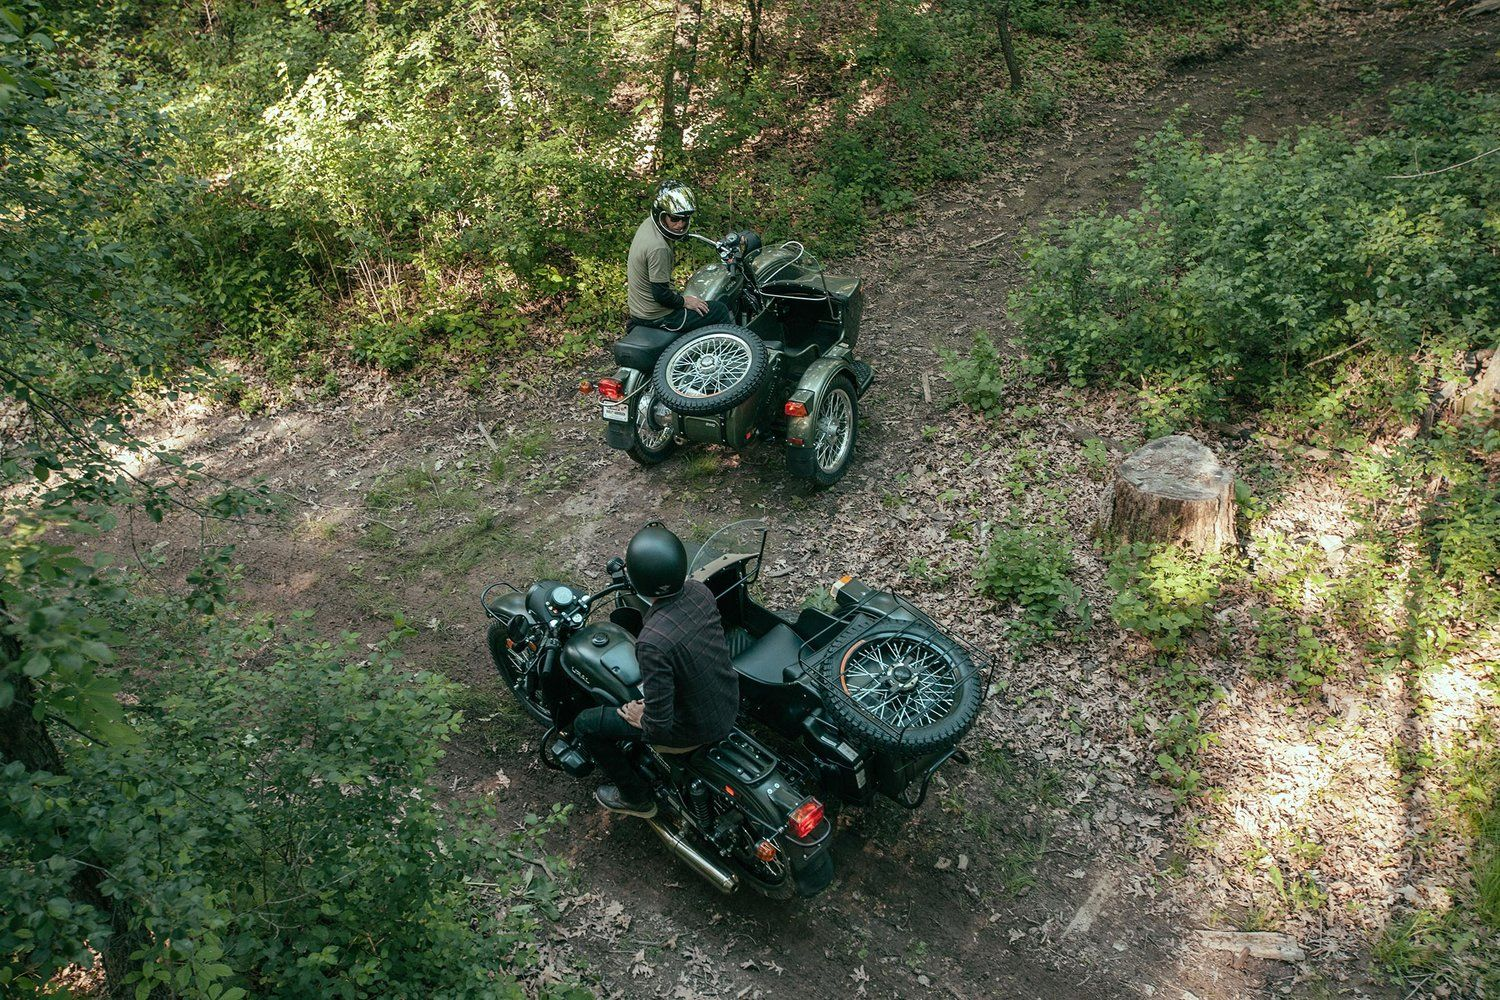 Review of Ural motorcycles, part 1 | PowerSport